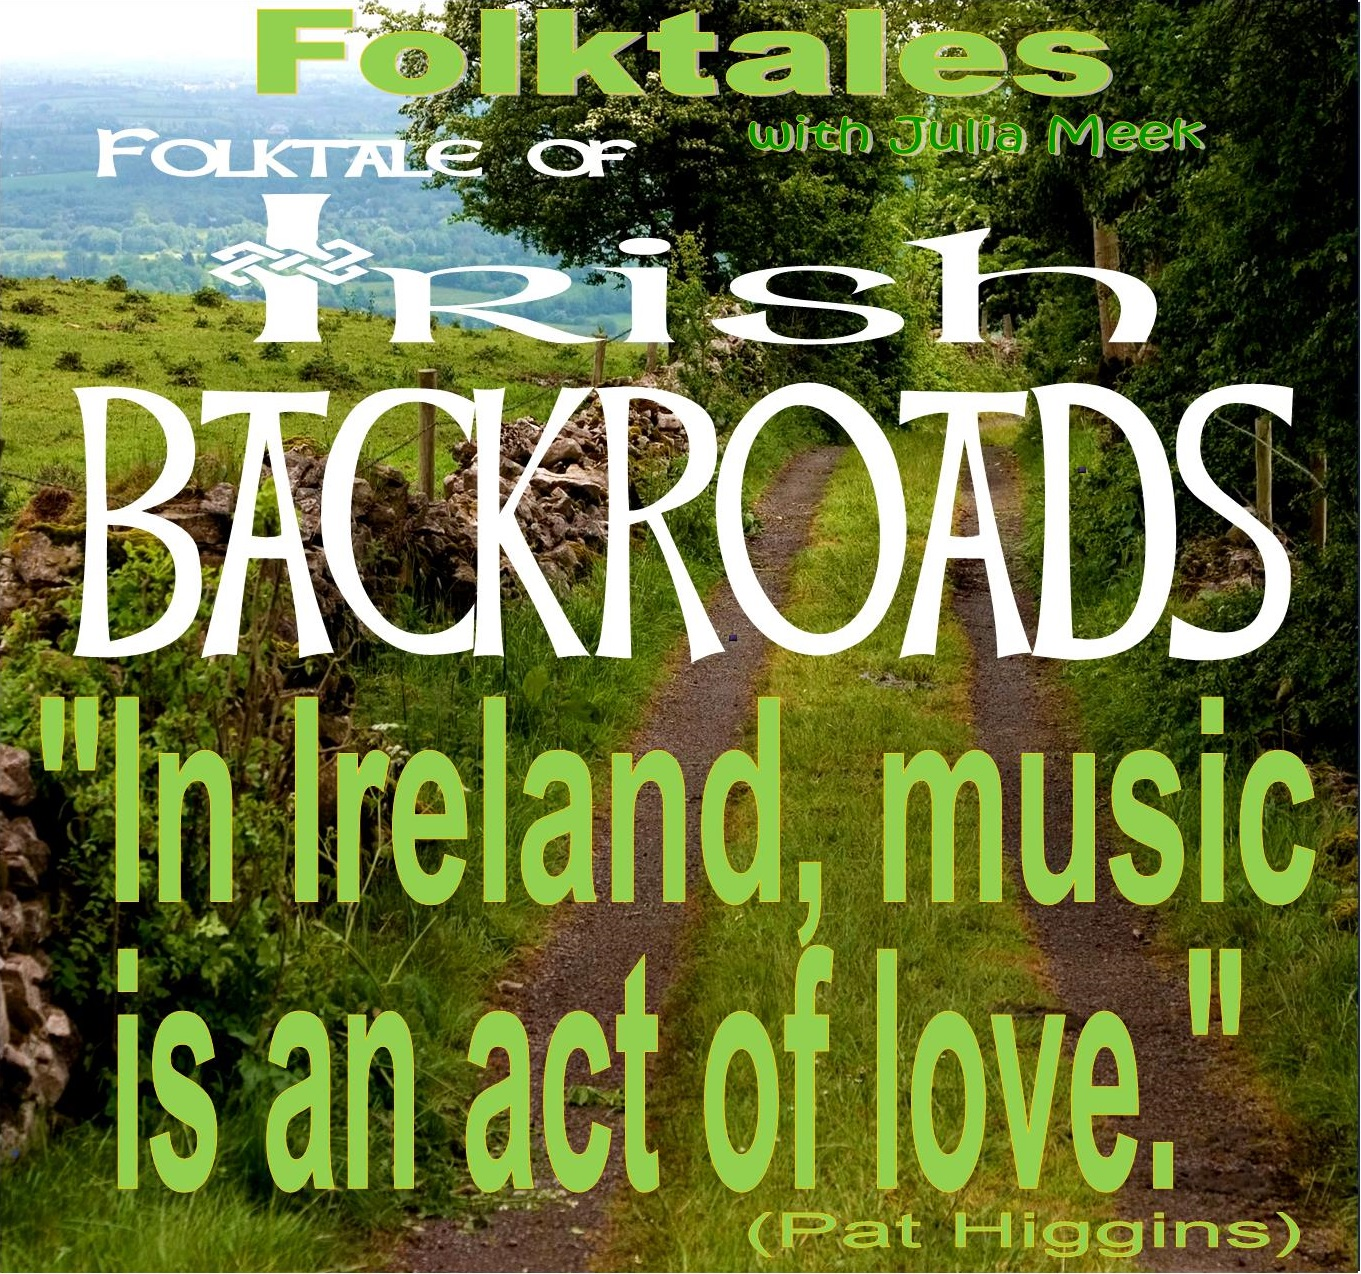 Caption: WBOI's Folktale of Irish Backroads, Credit: j